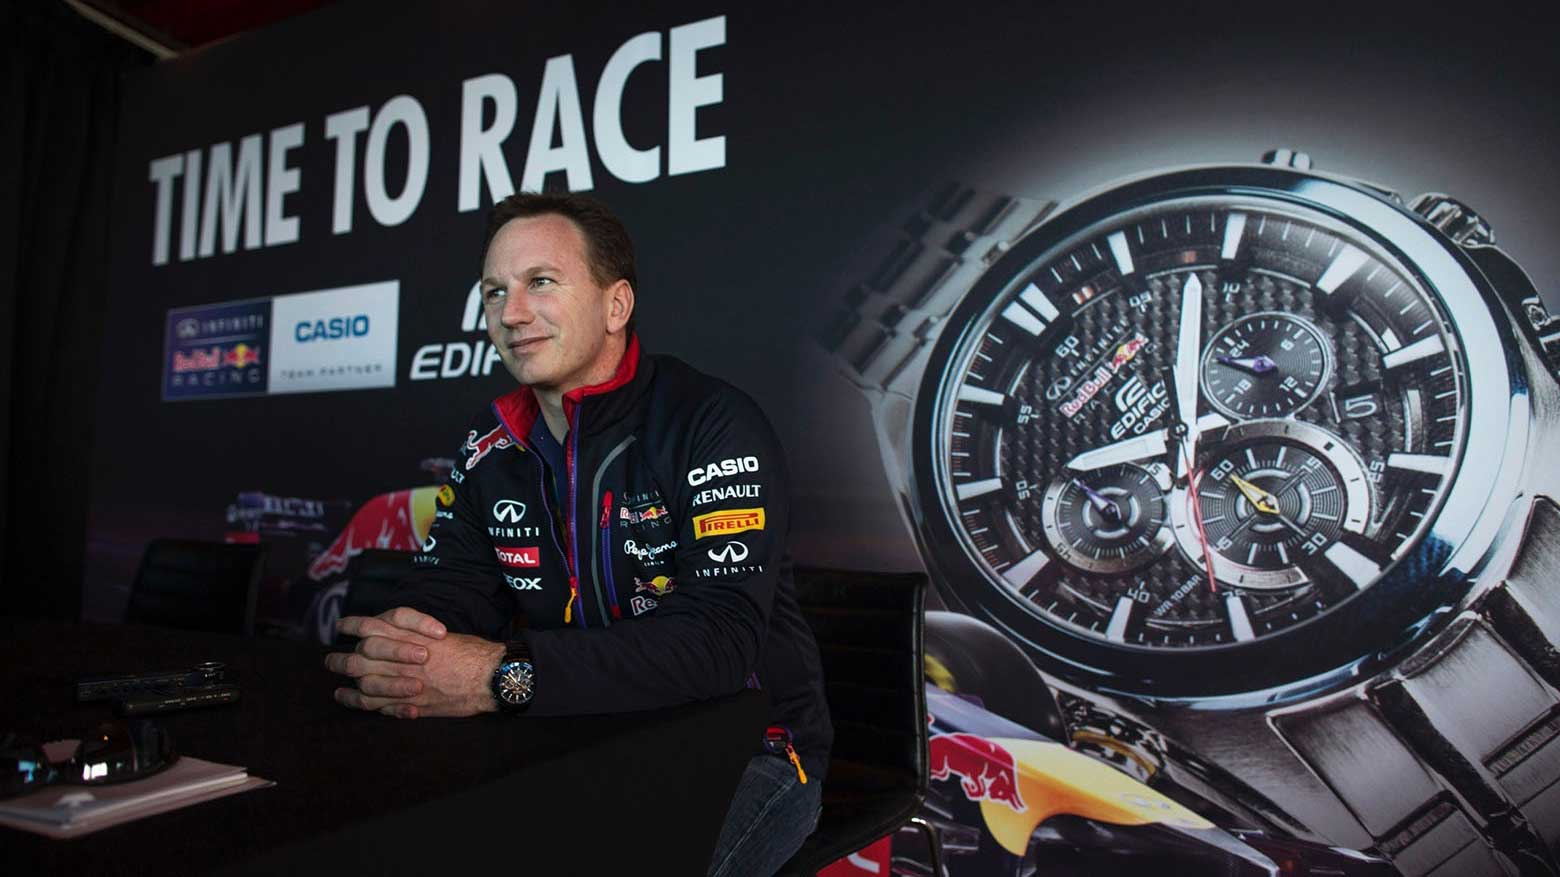 Redbull and Casio watch launch